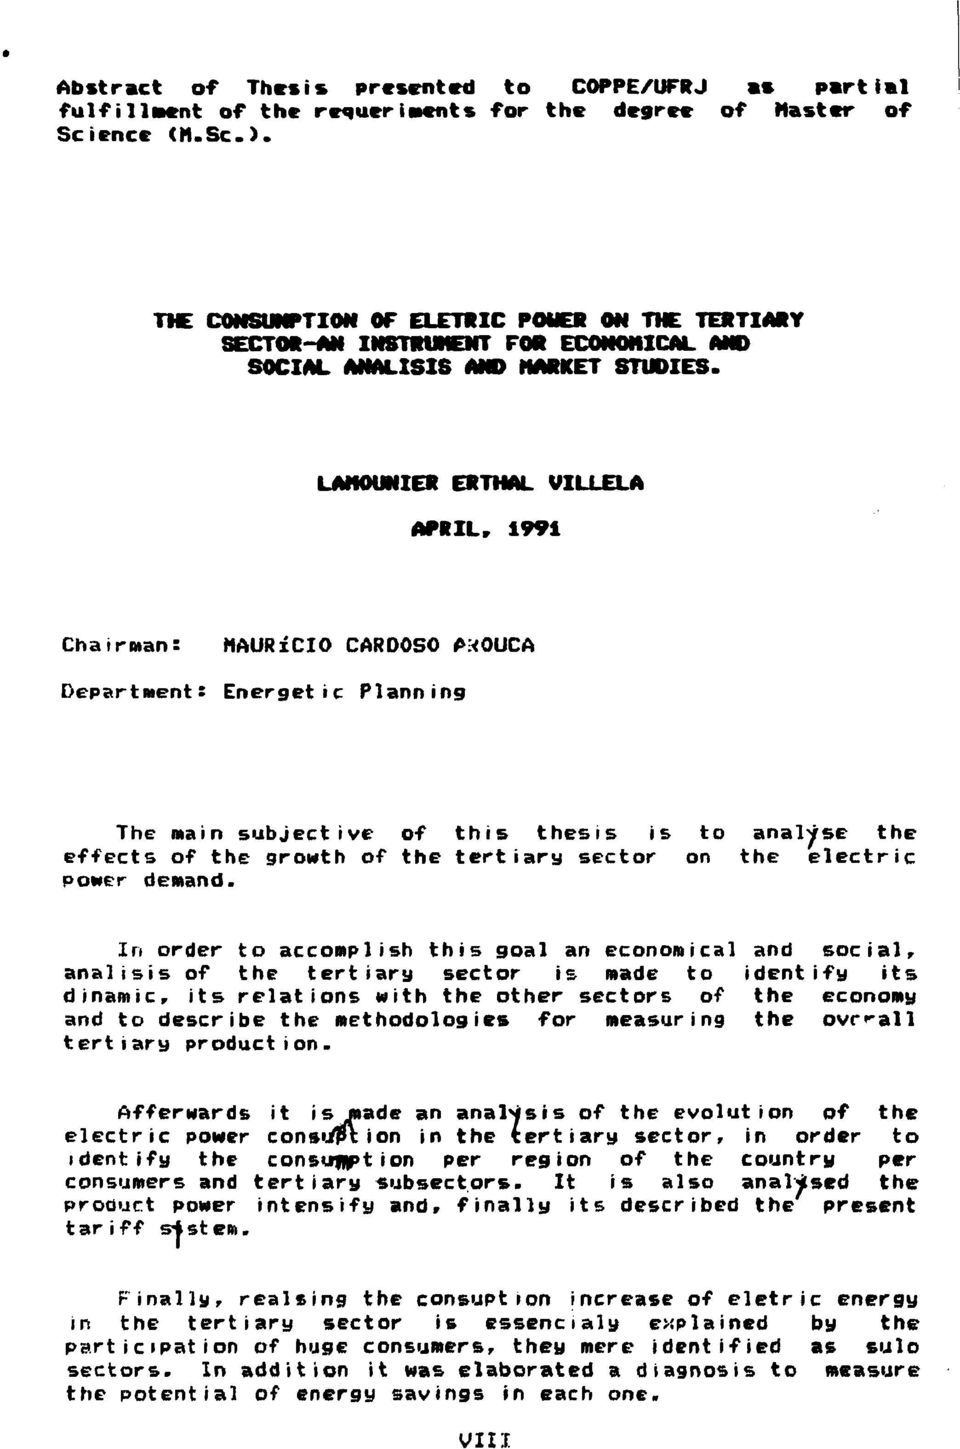 LANOUNIER ERTHAL VILUELA APRIL, 1991 ChairMan: MAURÍCIO CARDOSO PXOUCA Department: Energetic Planning The main subjective of this thesis is to analyse the effects of the growth of the tertiary sector